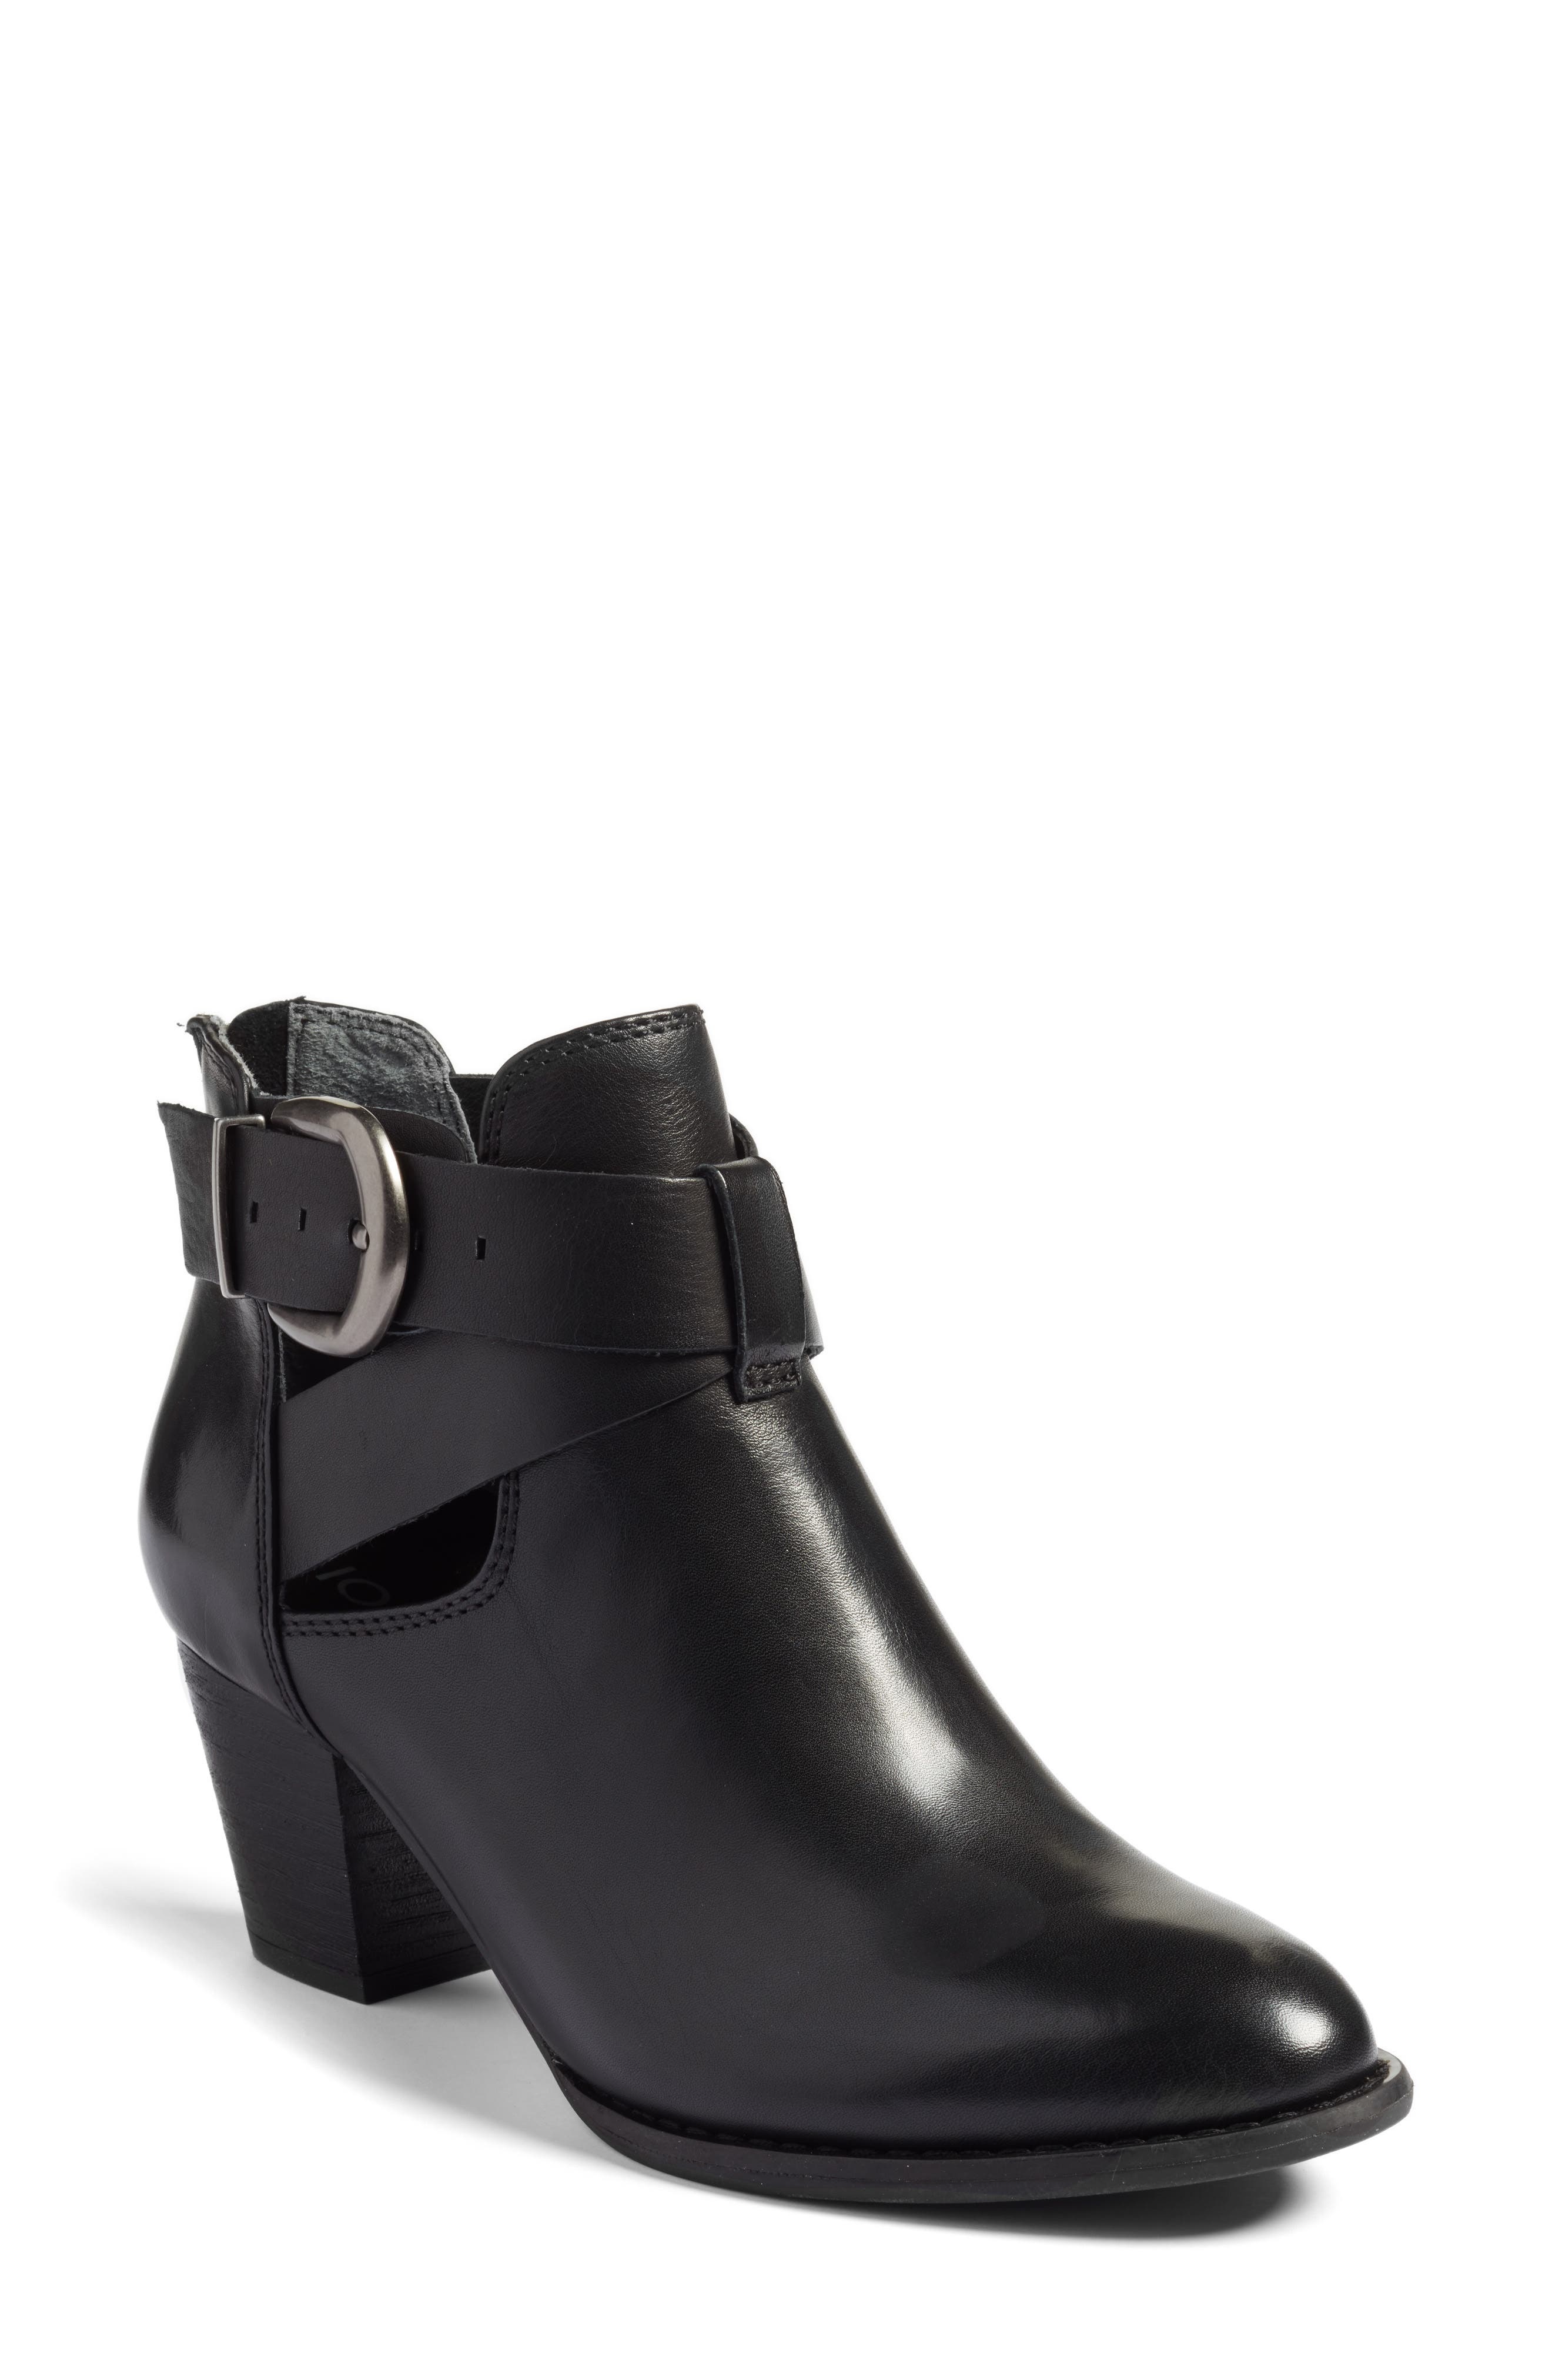 Rory Buckle Strap Bootie,                             Main thumbnail 1, color,                             001